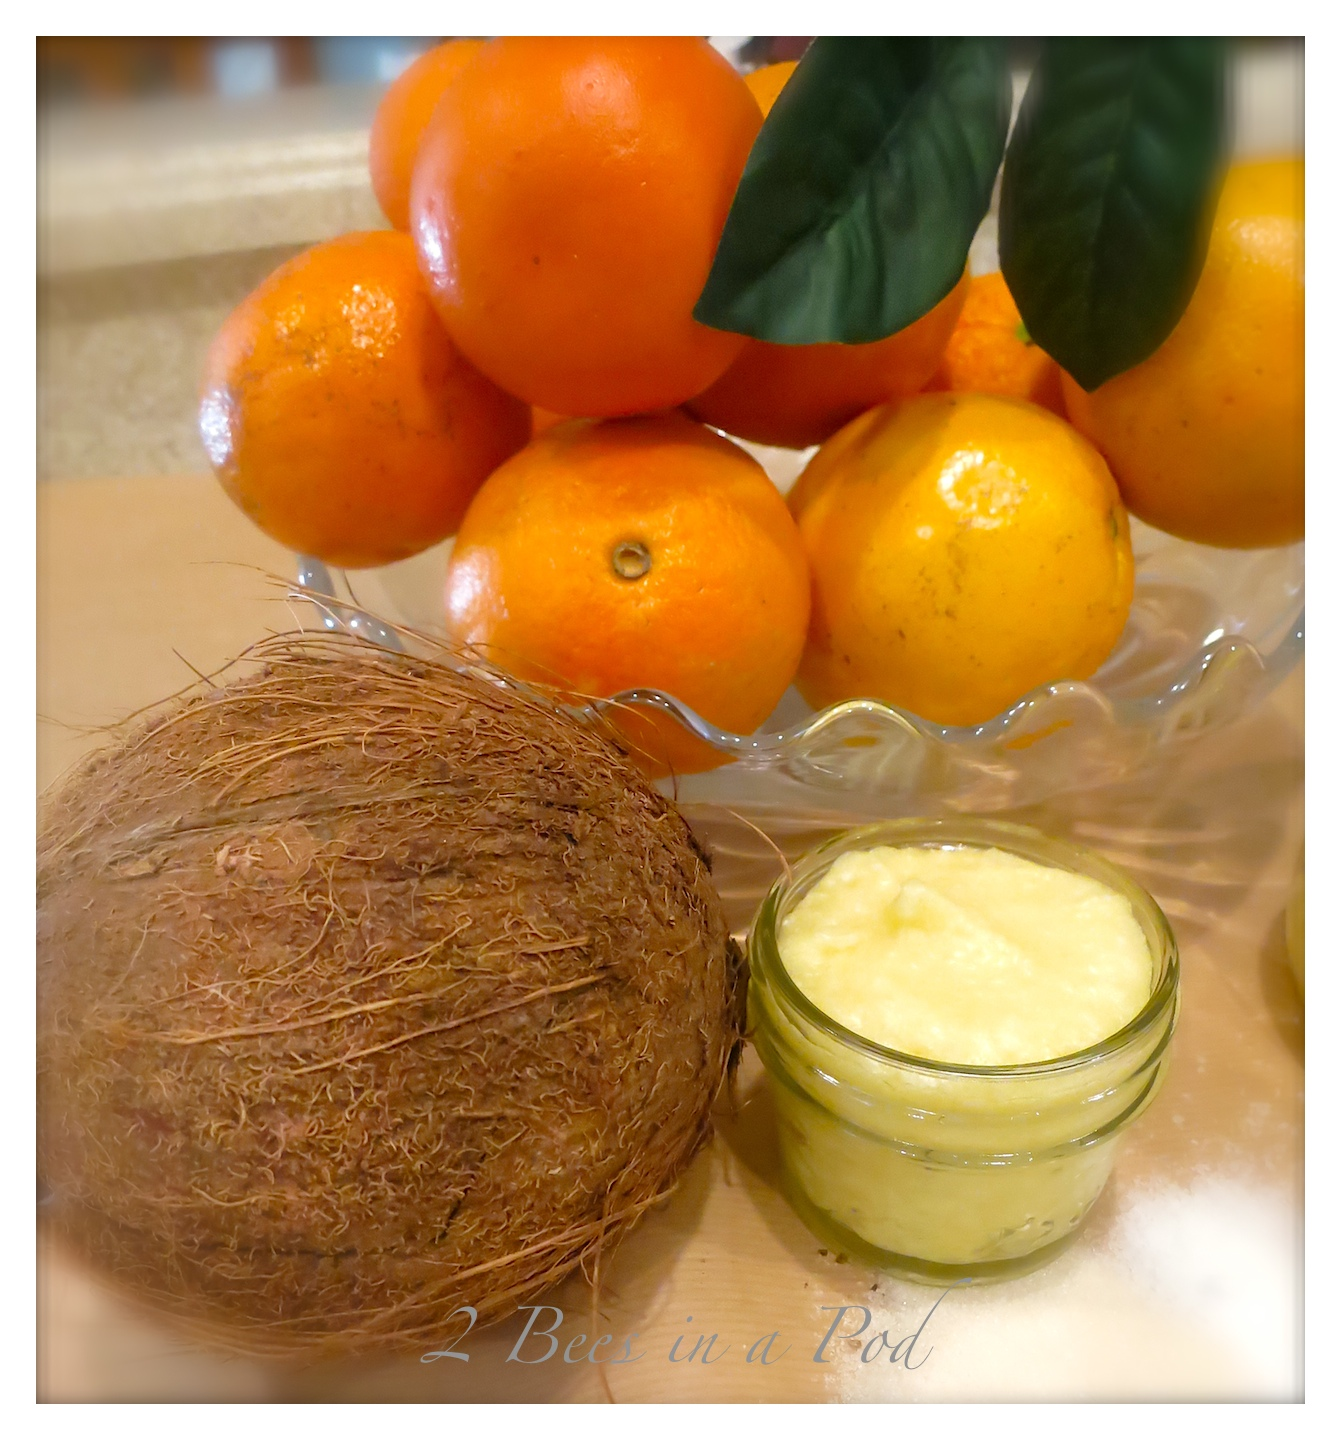 Handmade Coconut Orange Body Scrub. Super creamy and fragrant.